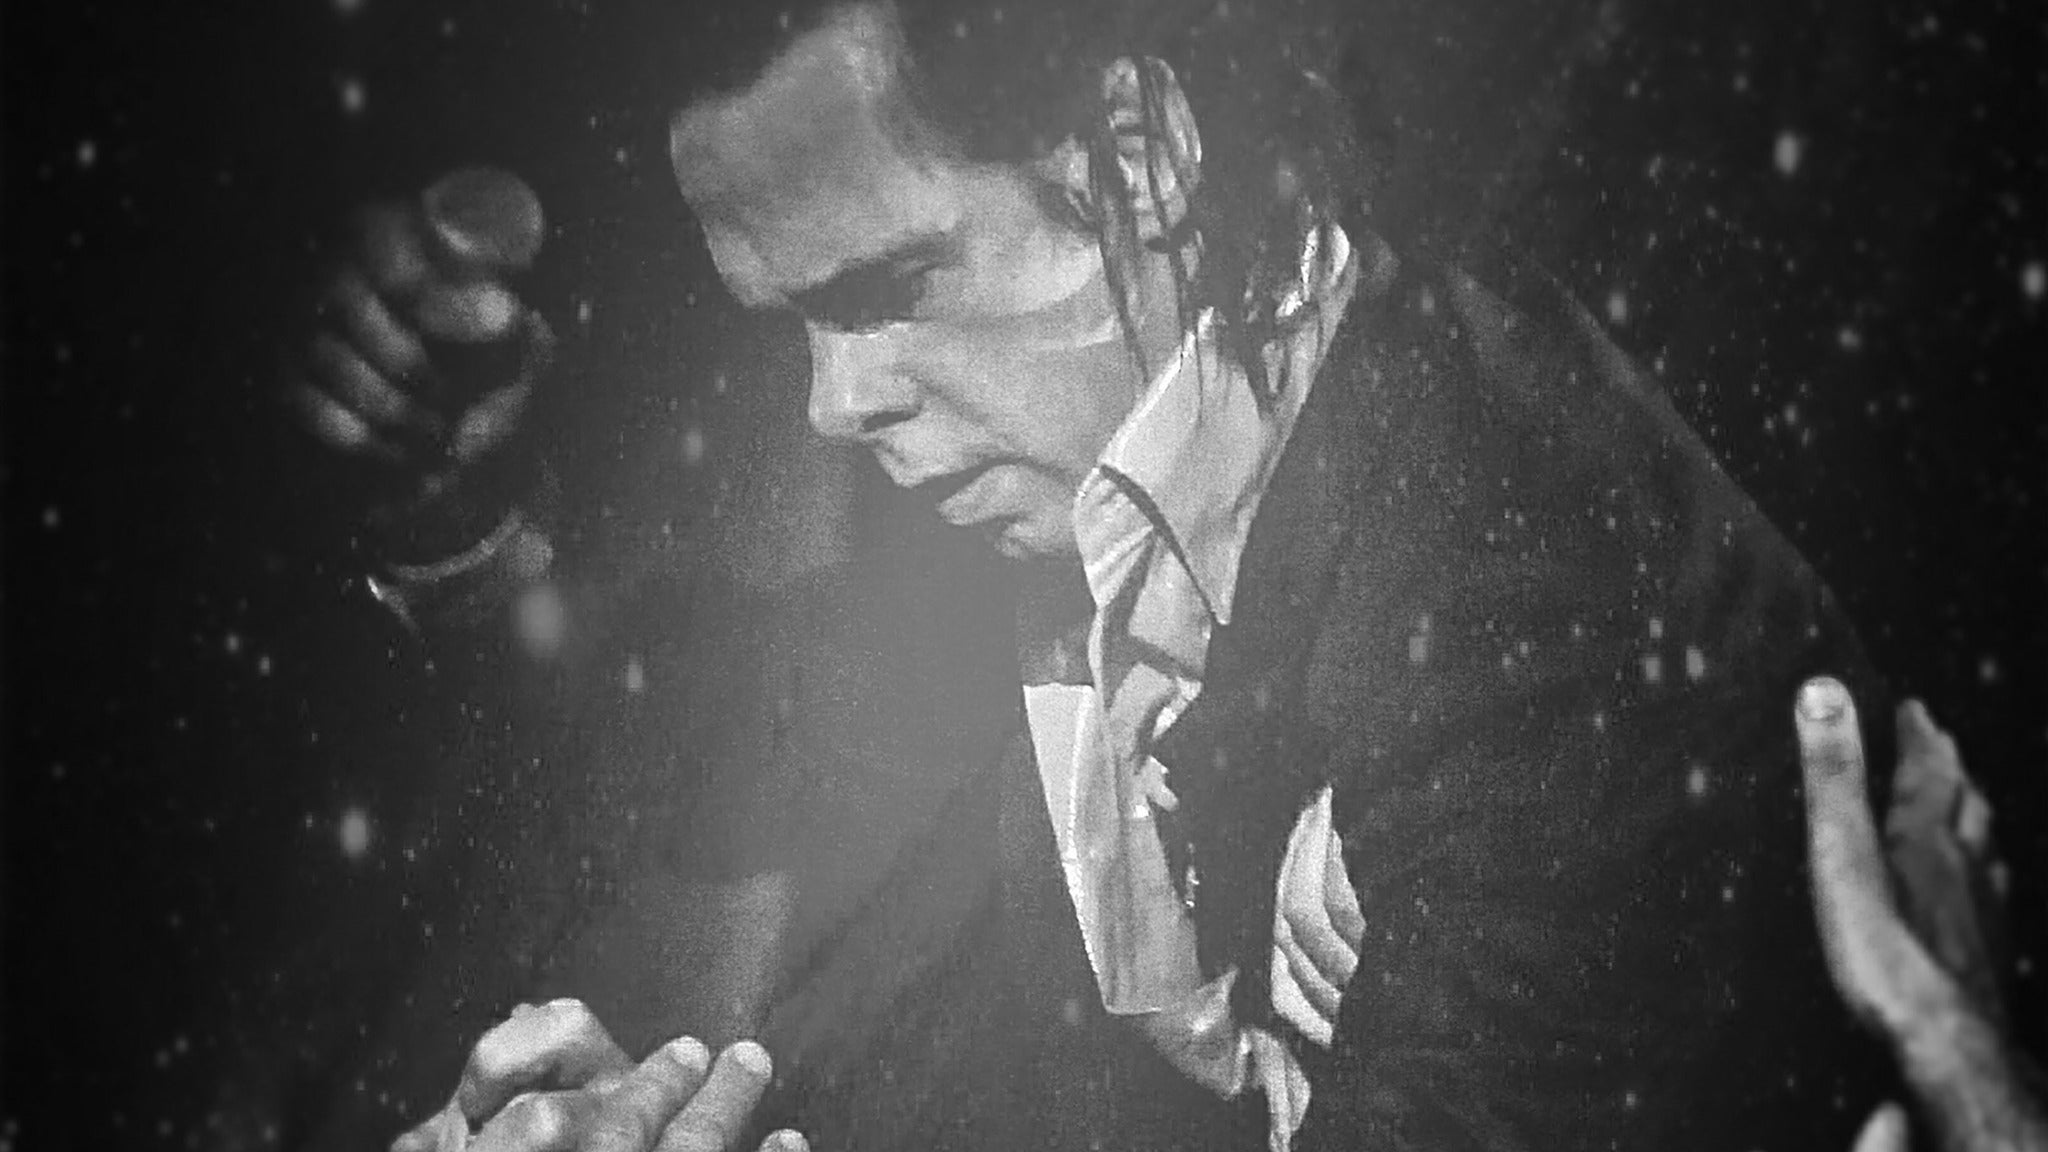 GV & KCRW Presents: Nick Cave & the Bad Seeds at The Forum